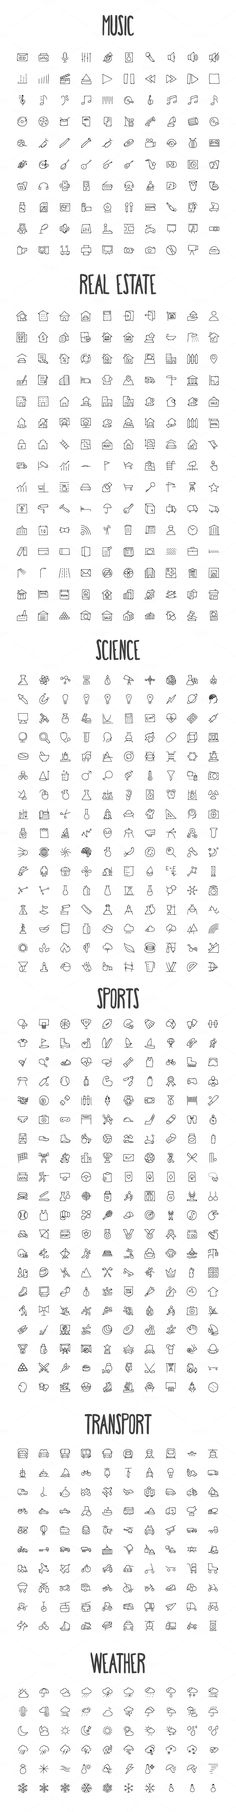 2440 Hand Drawn Doodle Icons Bundle by creativestall on Crea.- 2440 Hand Drawn Doodle Icons Bundle by creativestall on Creative Market - Doodle Drawings, Doodle Art, Doodle Frames, Music Doodle, Doodle Tattoo, Tattoo Drawings, Bullet Journal Inspiration, Drawing Tips, Drawing Reference